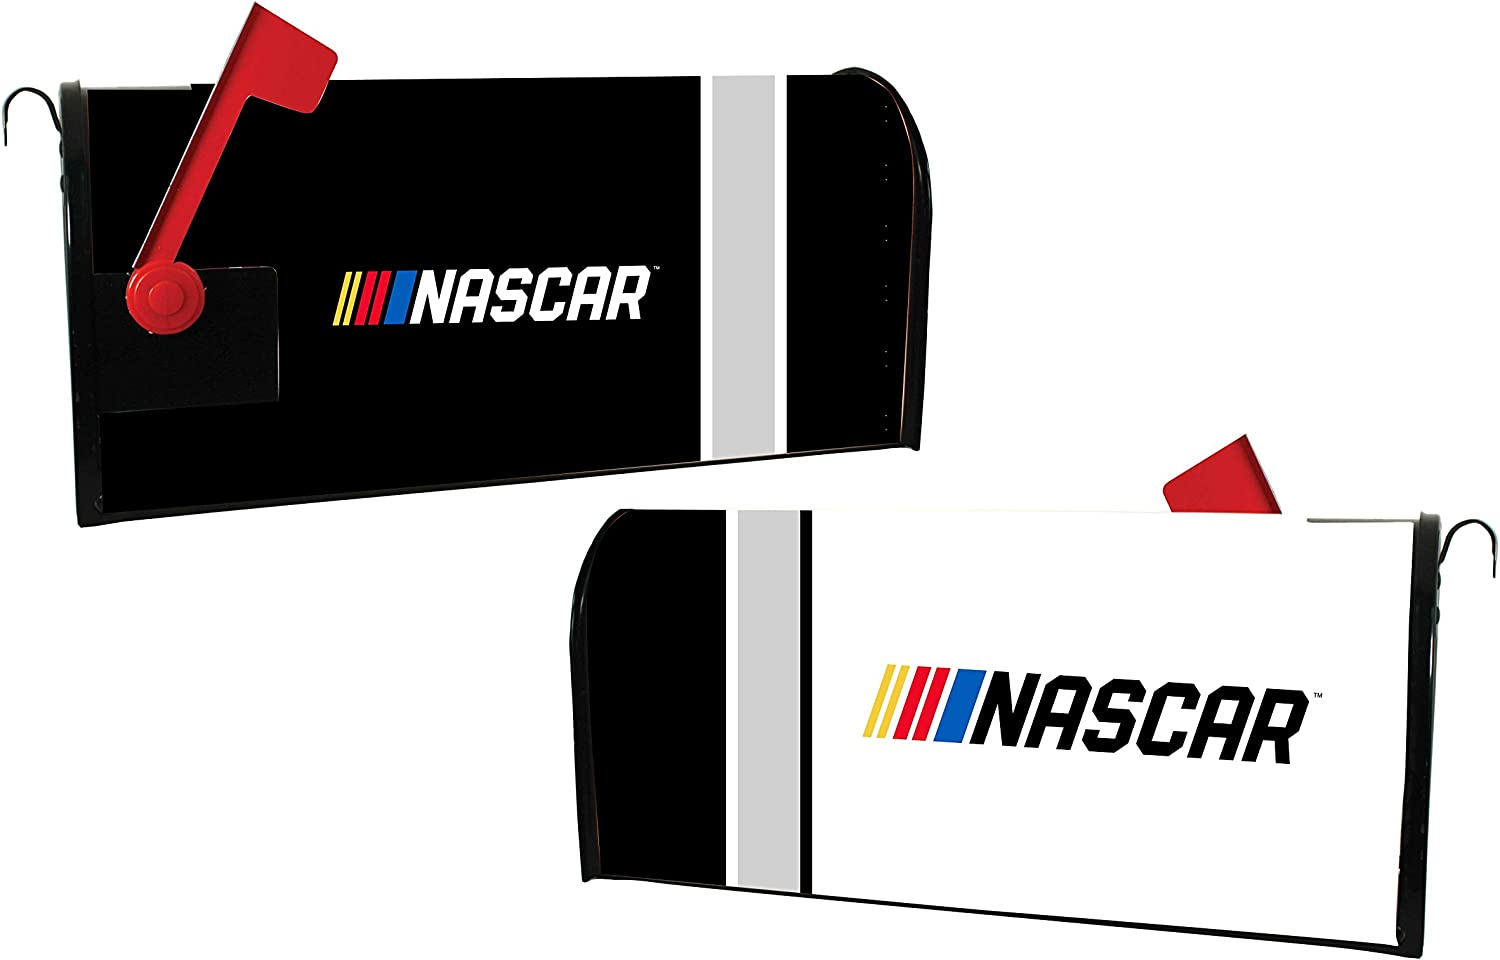 Nascar Magnetic Max 77% OFF Mailbox Cover Factory outlet